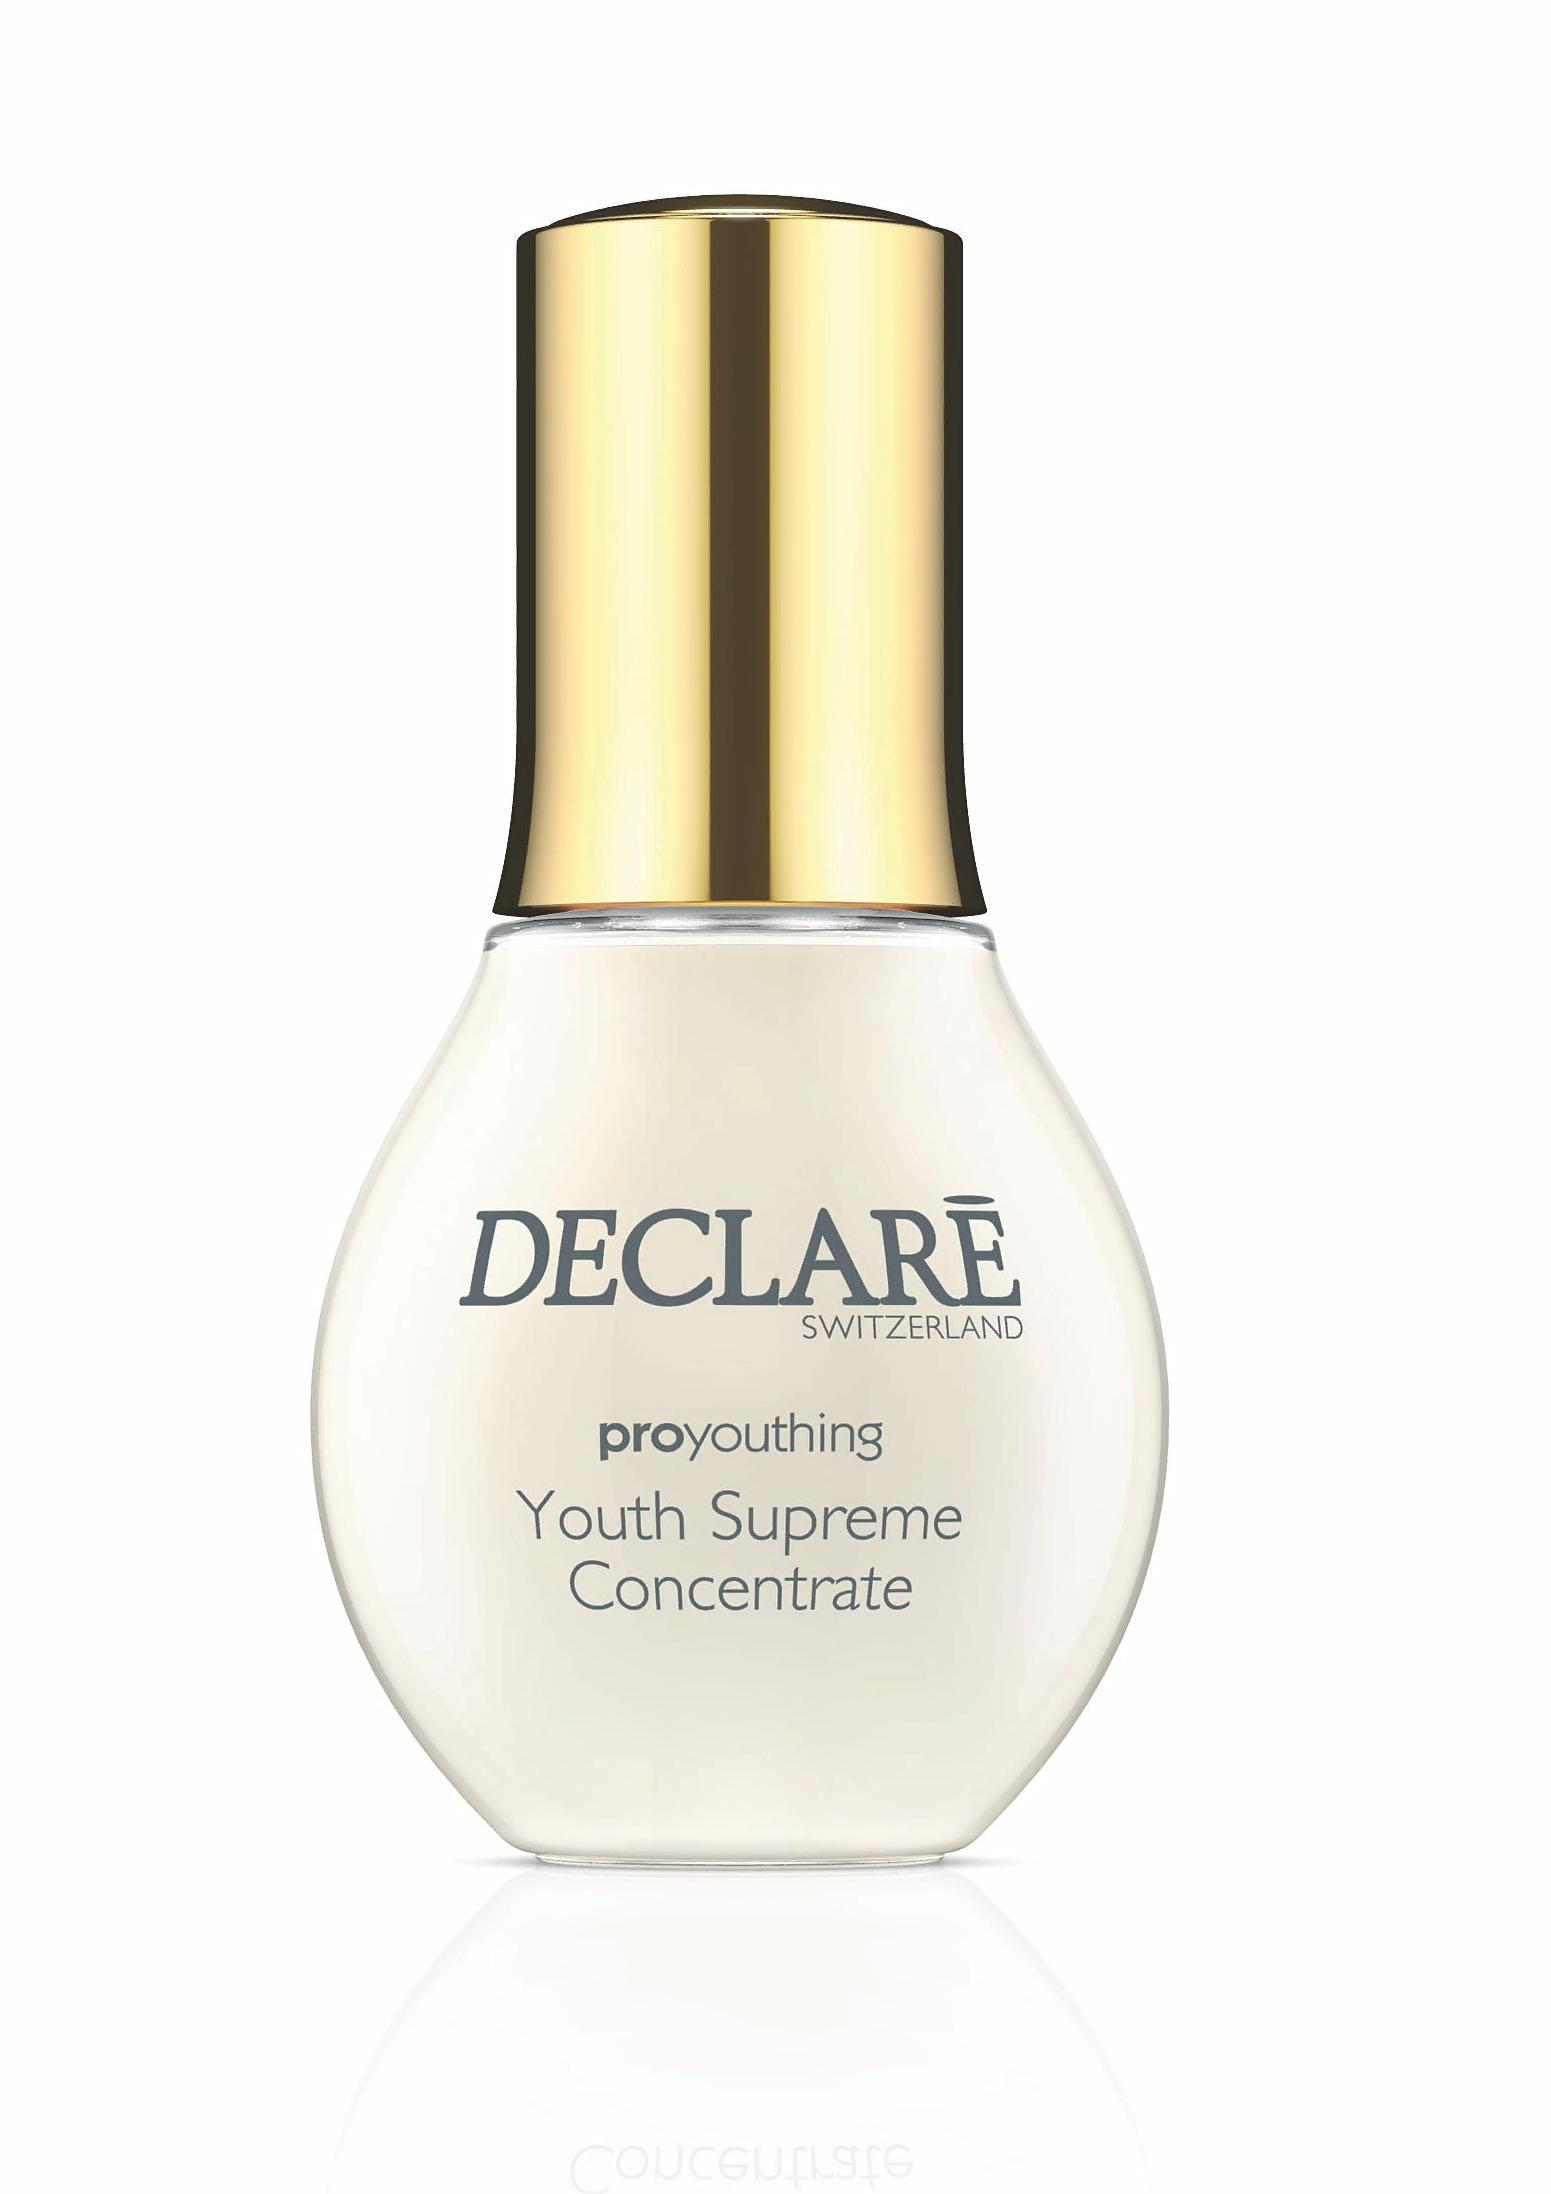 DECLARE Концентрат Совершенство молодости / Youth Supreme Concentrate 50мл